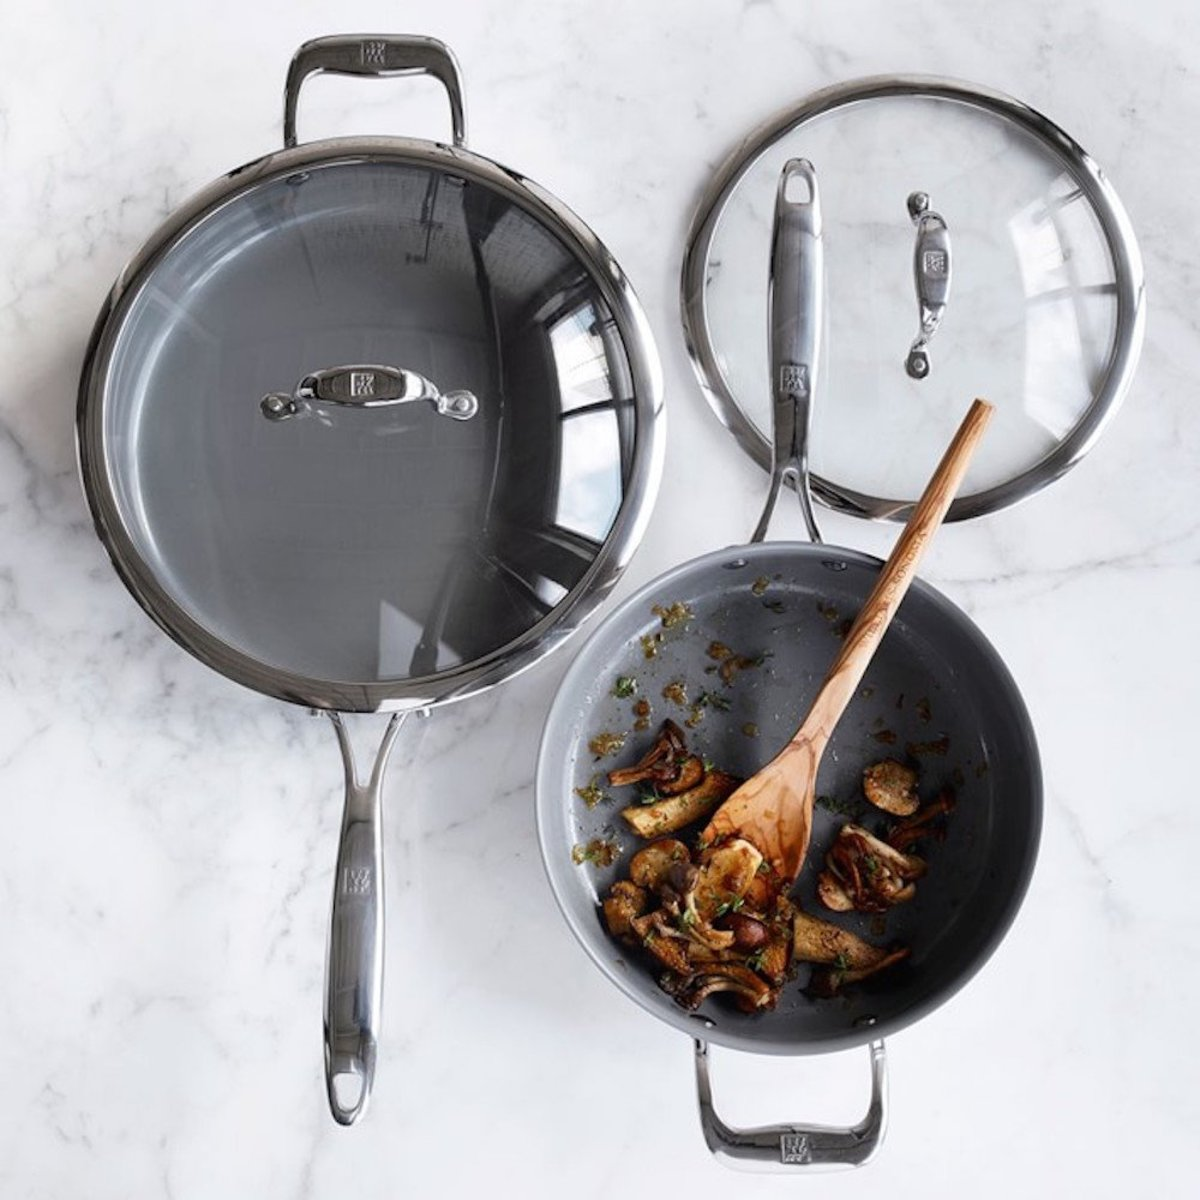 8 Non-Toxic Cookware Brands to Keep Chemicals Out of Your